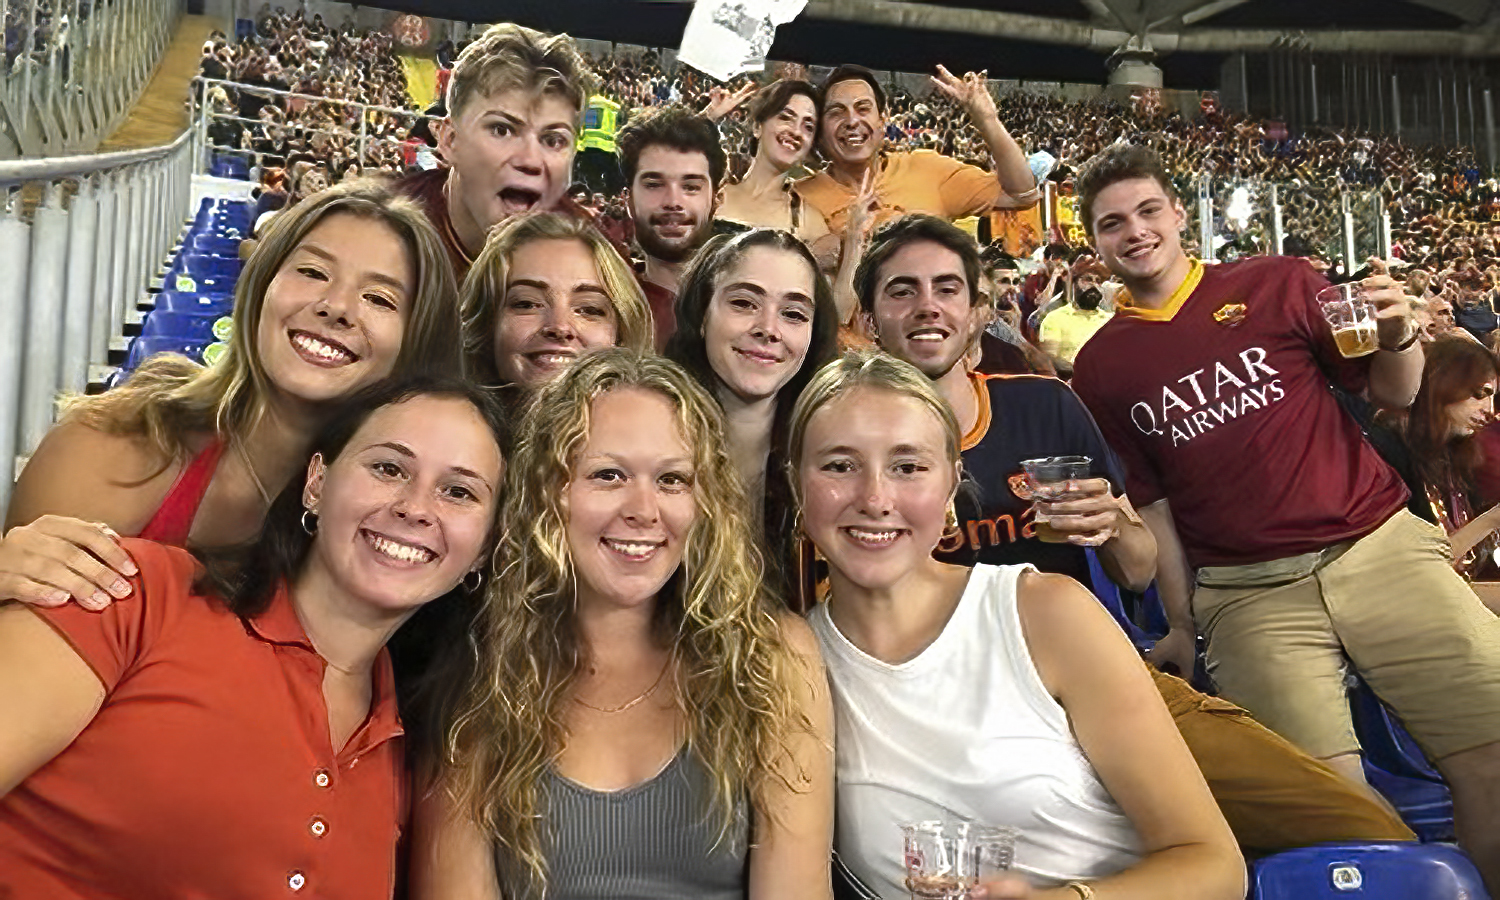 Hobart and William Smith students take a photo during an A.S. Roma soccer match while studying in Italy under the direction of Professor of Art and Architecture Christine Chin.